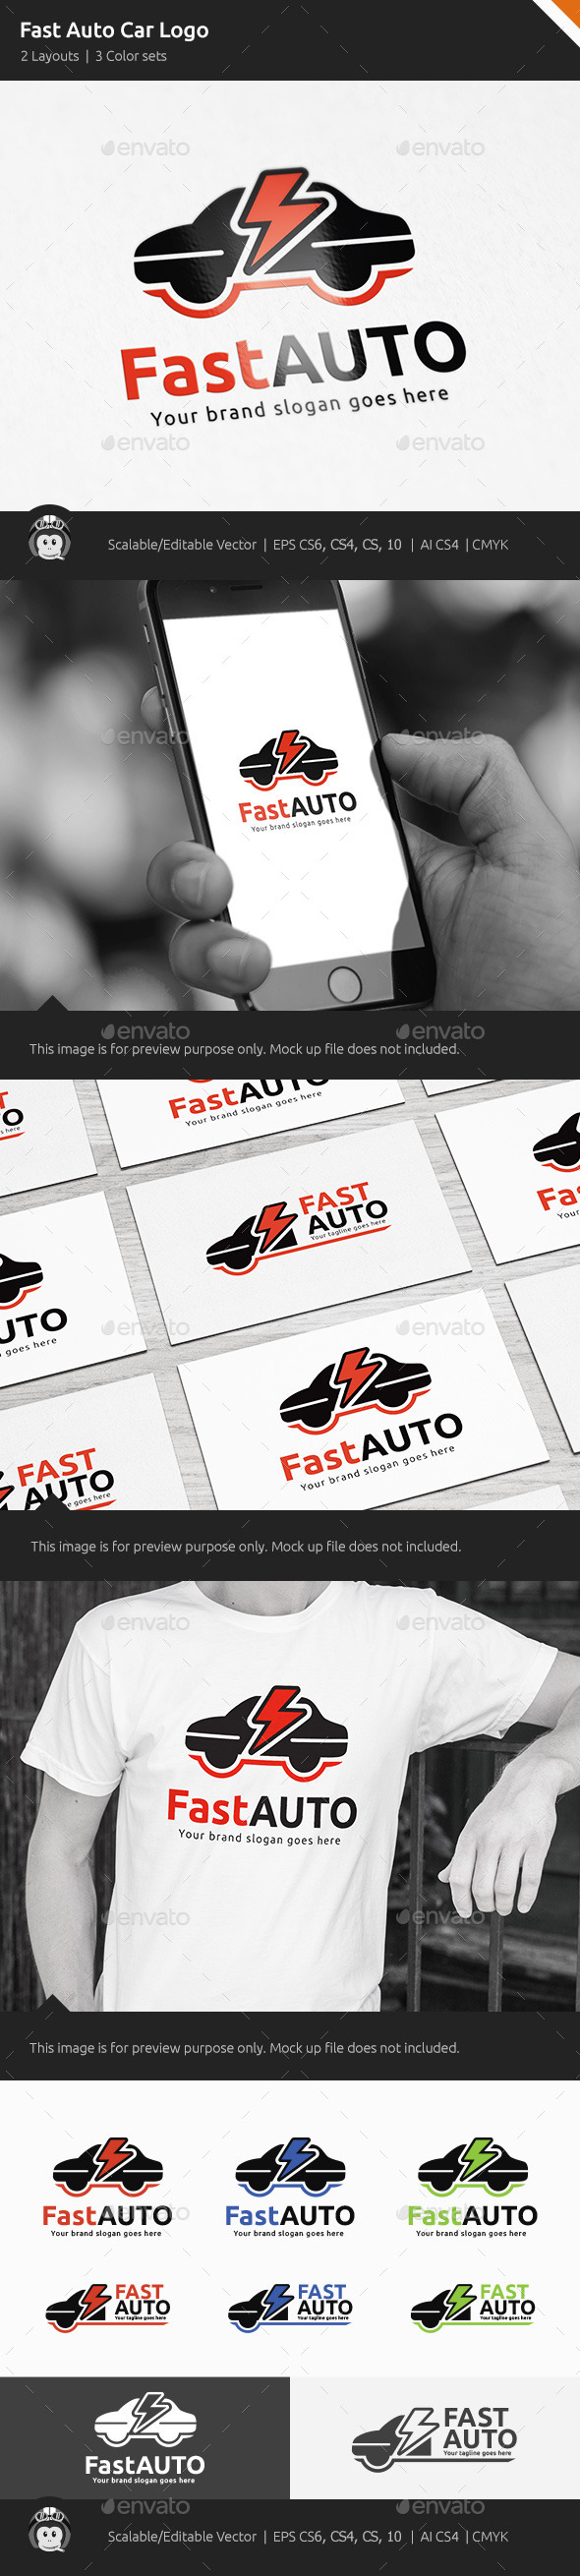 GraphicRiver Fast Auto Car Logo 10518785